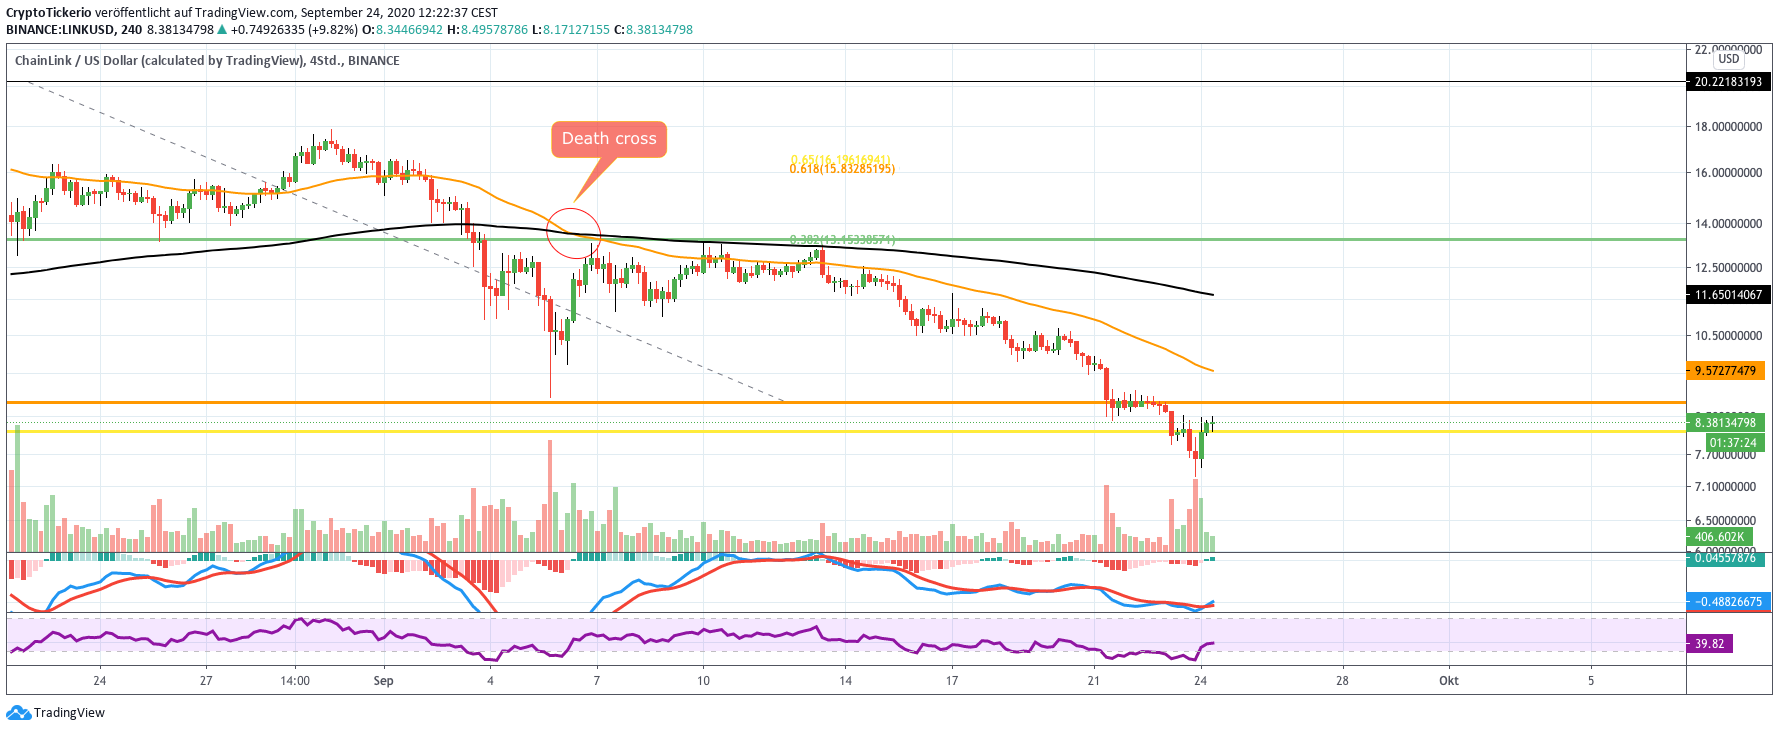 LINK/USD 4H price chart analysis